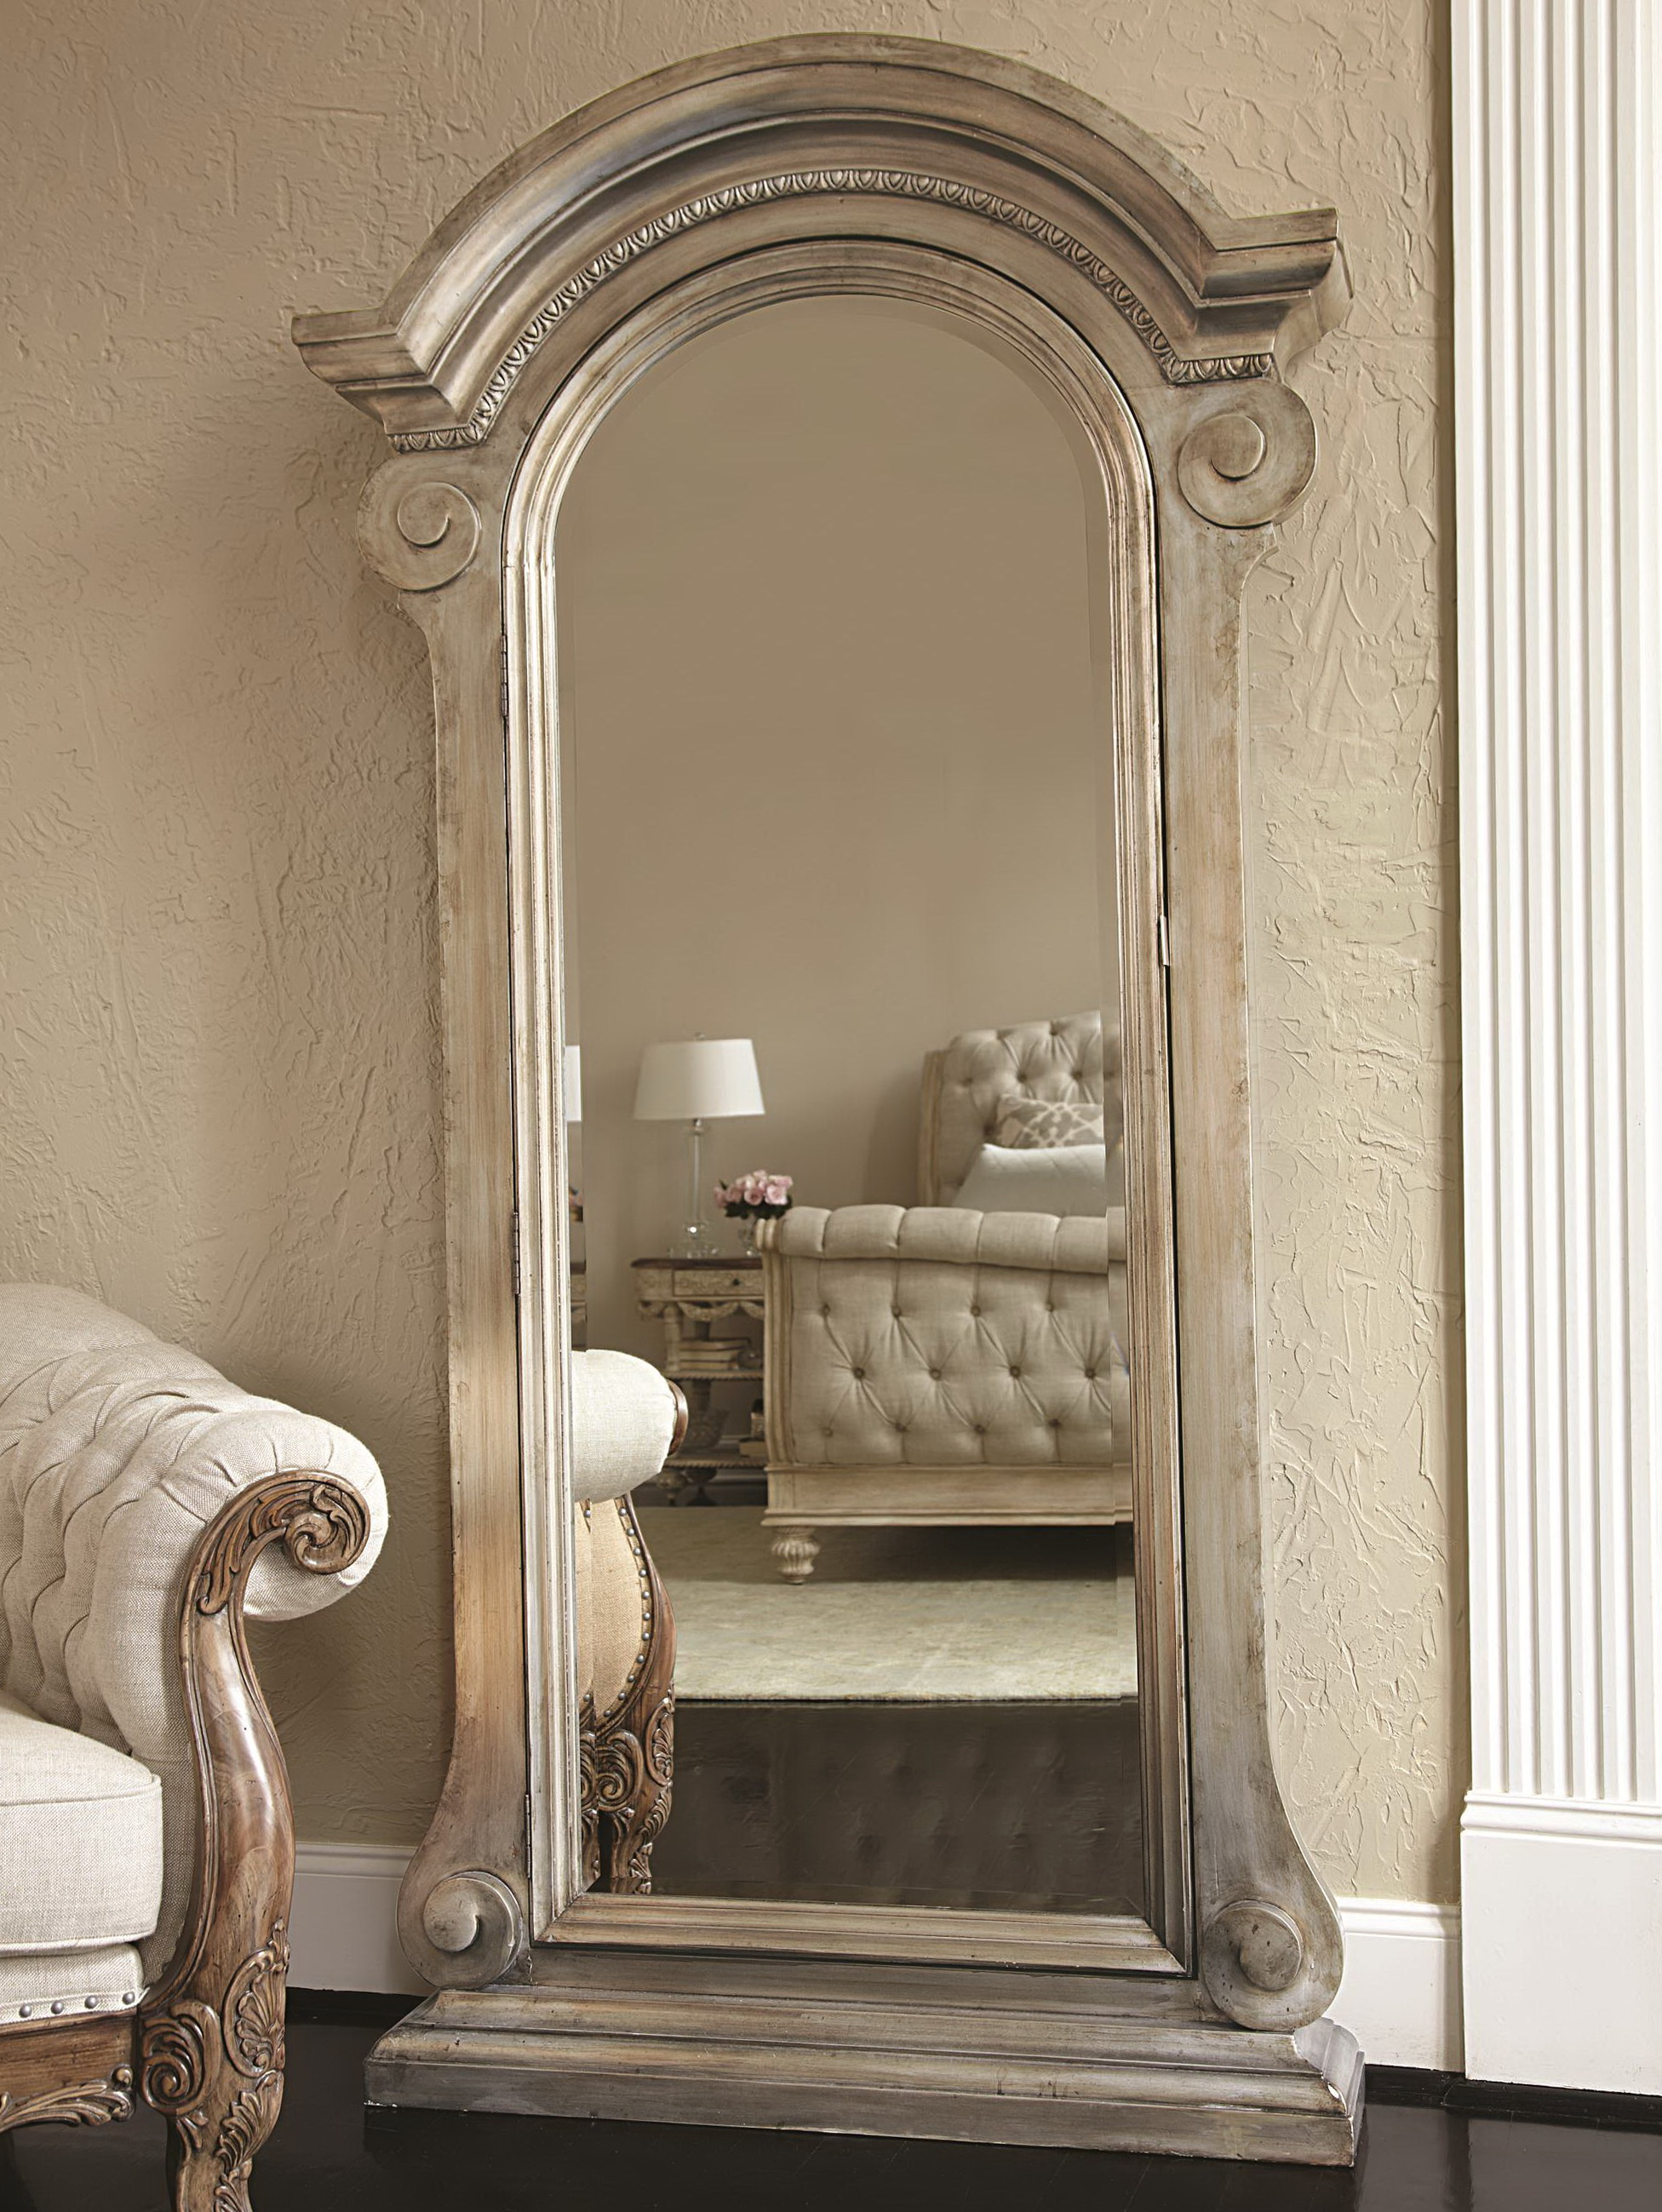 Luxury Wooden Standing Mirror Jewelry Armoire In Silver With Curve At Top  Before The Beige Wall